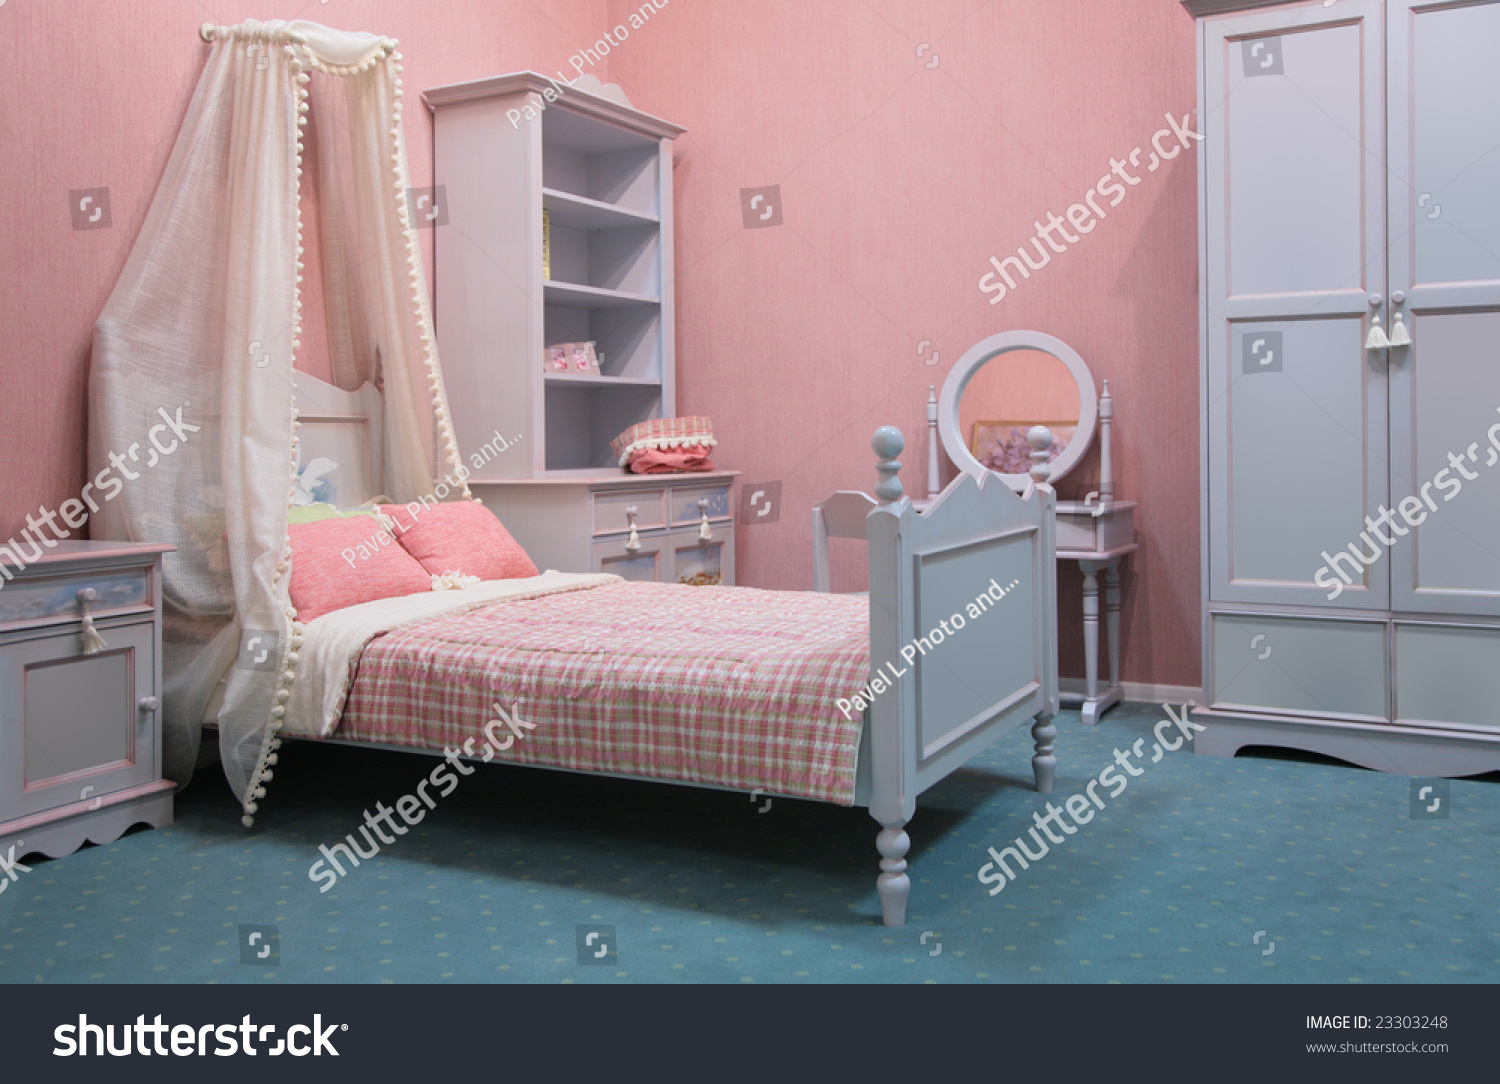 old fashioned bedroom stock photo 23303248 shutterstock